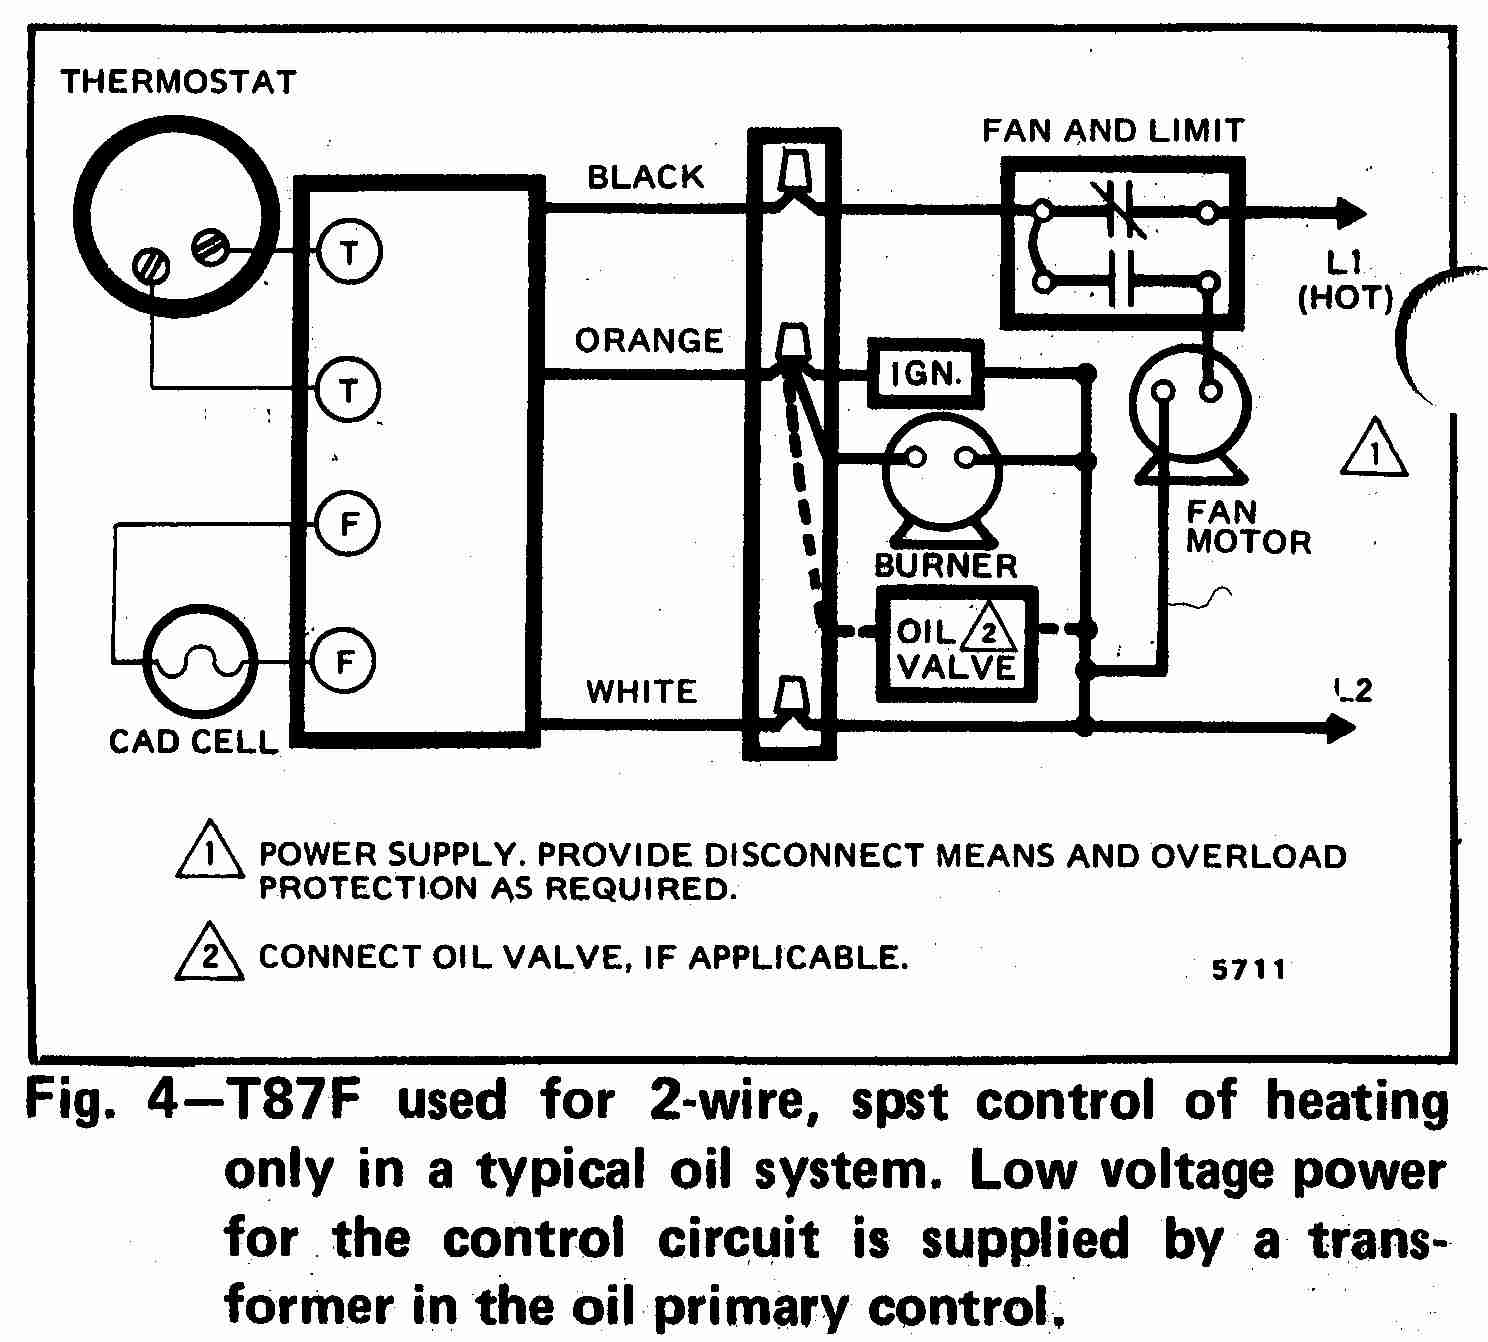 TT_T87F_0002_2W_DJF room thermostat wiring diagrams for hvac systems gas furnace wiring schematic at n-0.co